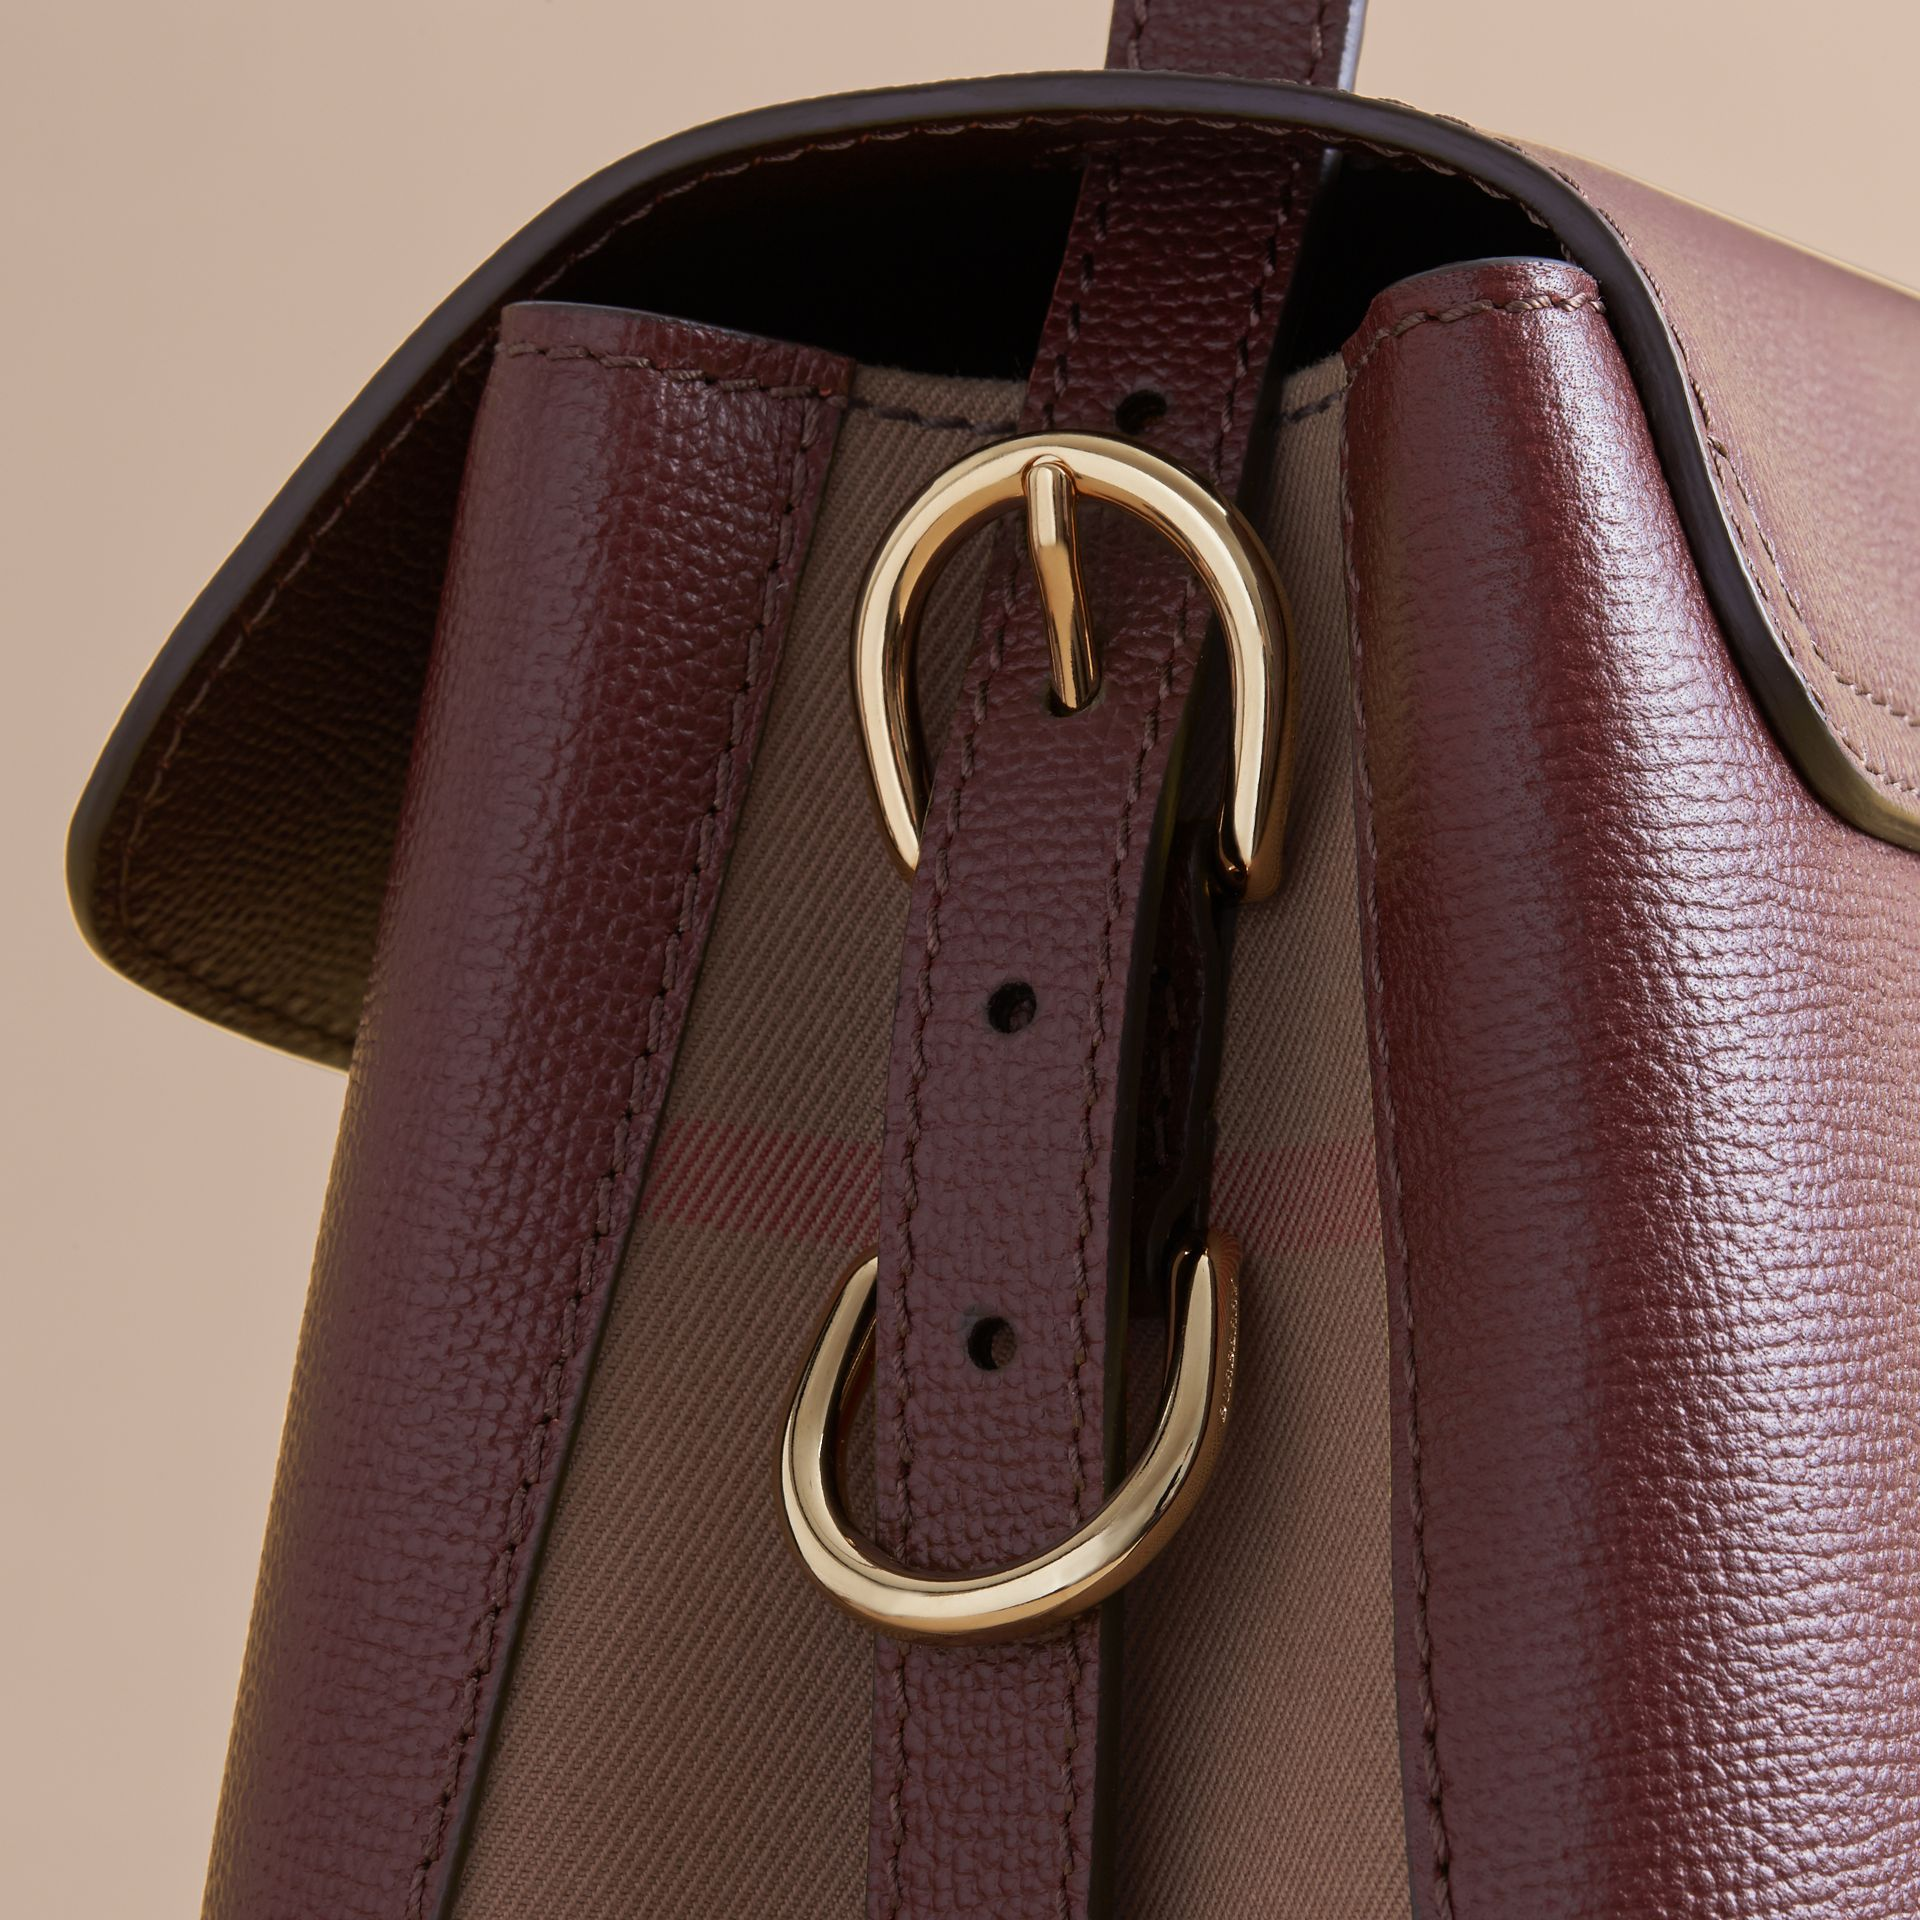 Medium Grainy Leather and House Check Tote Bag in Mahogany Red - Women | Burberry Australia - gallery image 7